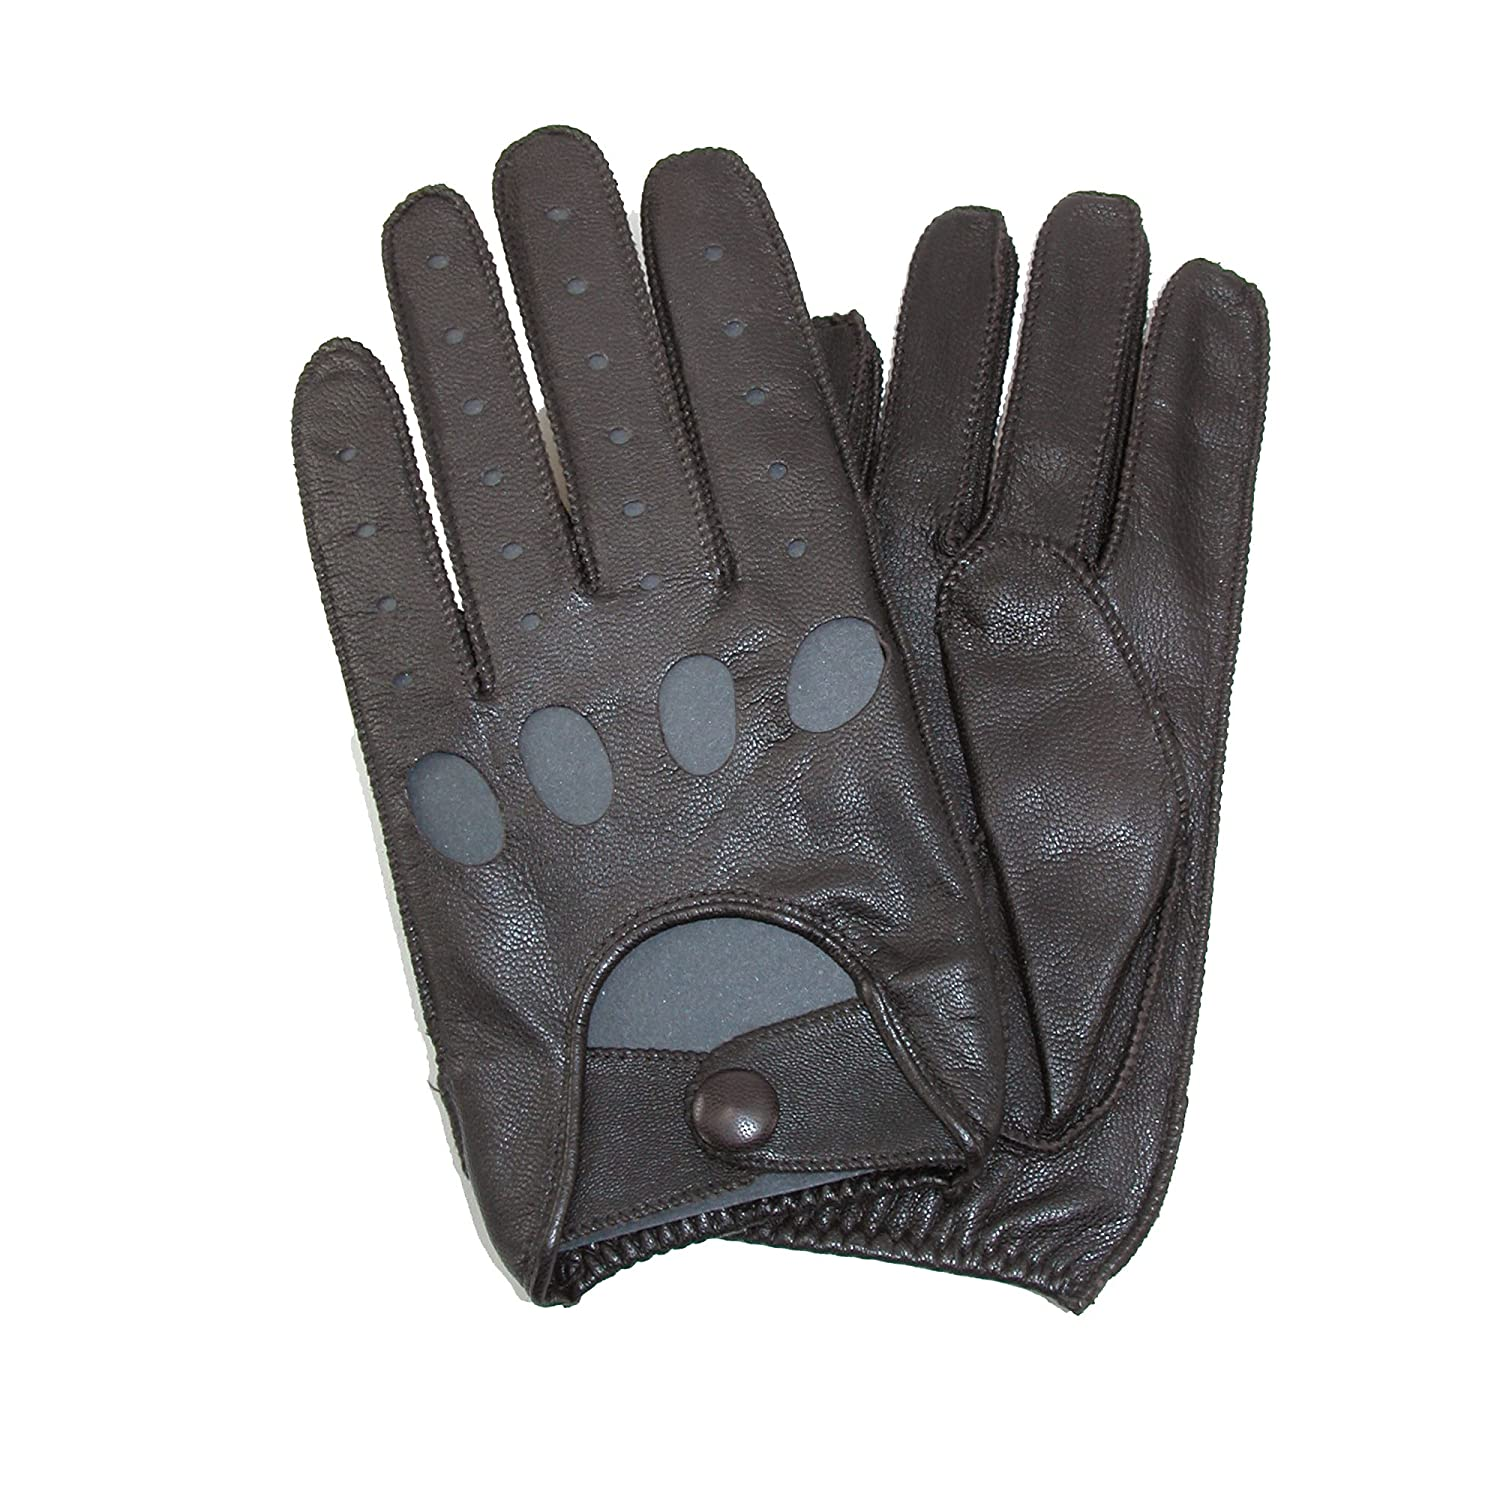 Leather driving gloves macys - Isotoner Men S Smooth Leather Driving Glove With Covered Snap Black Medium At Amazon Men S Clothing Store Cold Weather Gloves